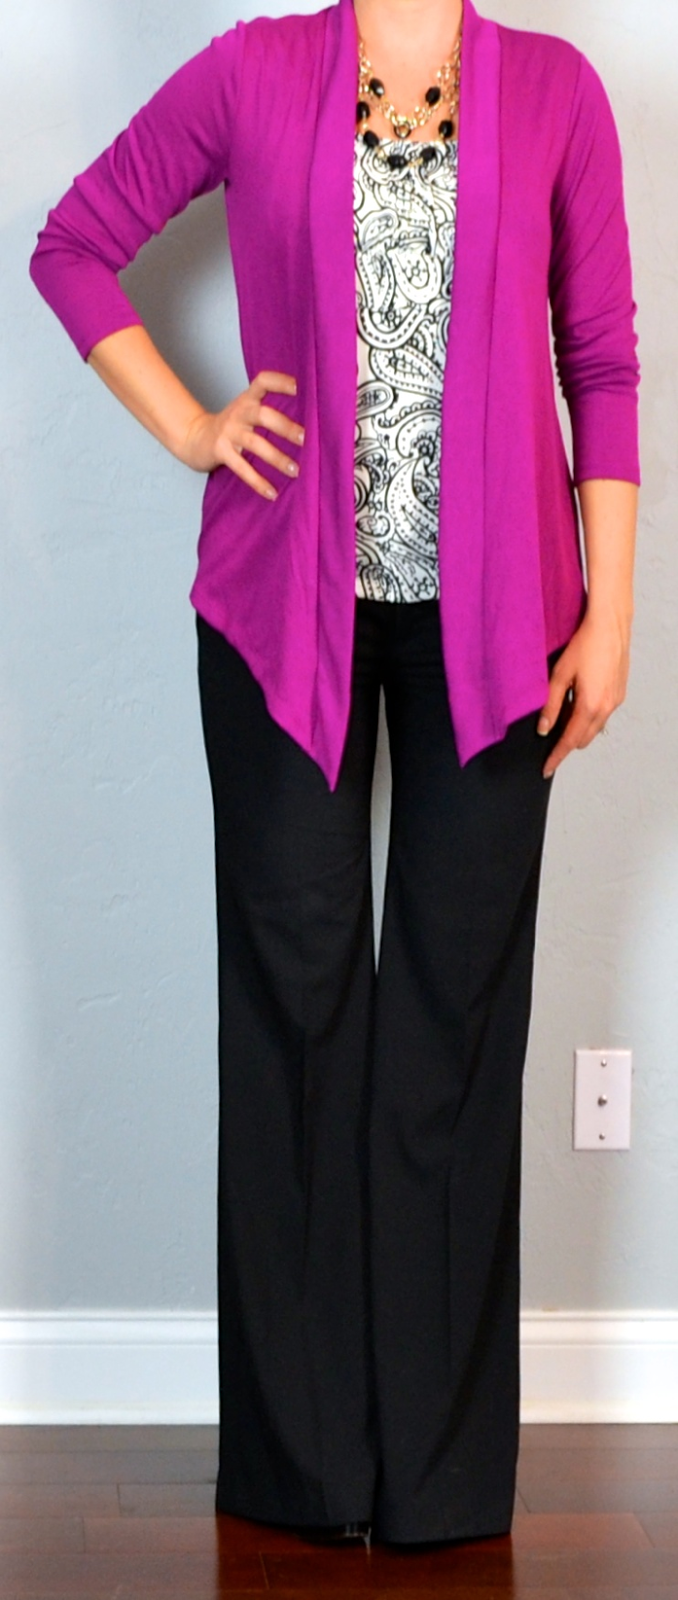 Outfit Post Pink Cardigan Print Blouse Black Pants